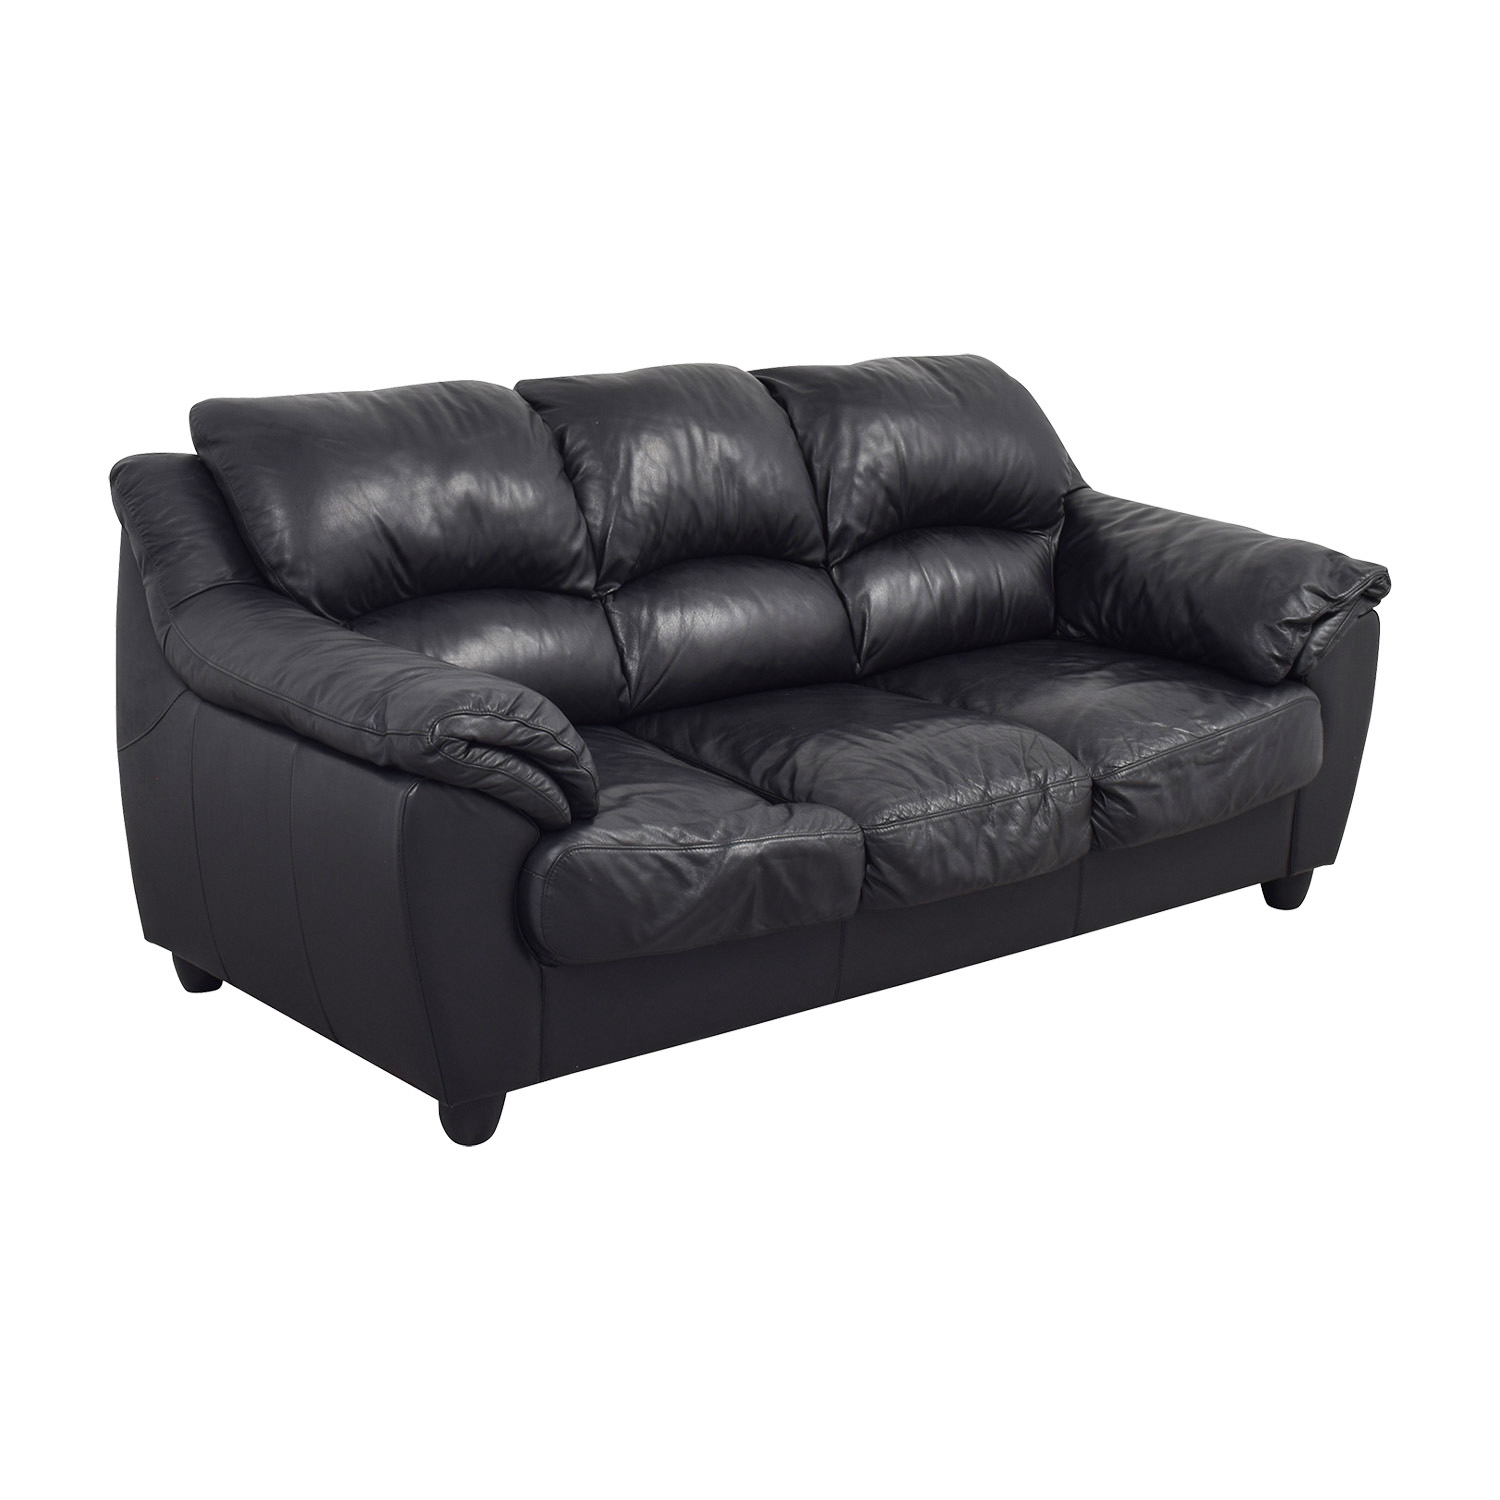 Tremendous 90 Off Raymour Flanigan Raymour Flanigan Black Leather Couch Sofas Short Links Chair Design For Home Short Linksinfo